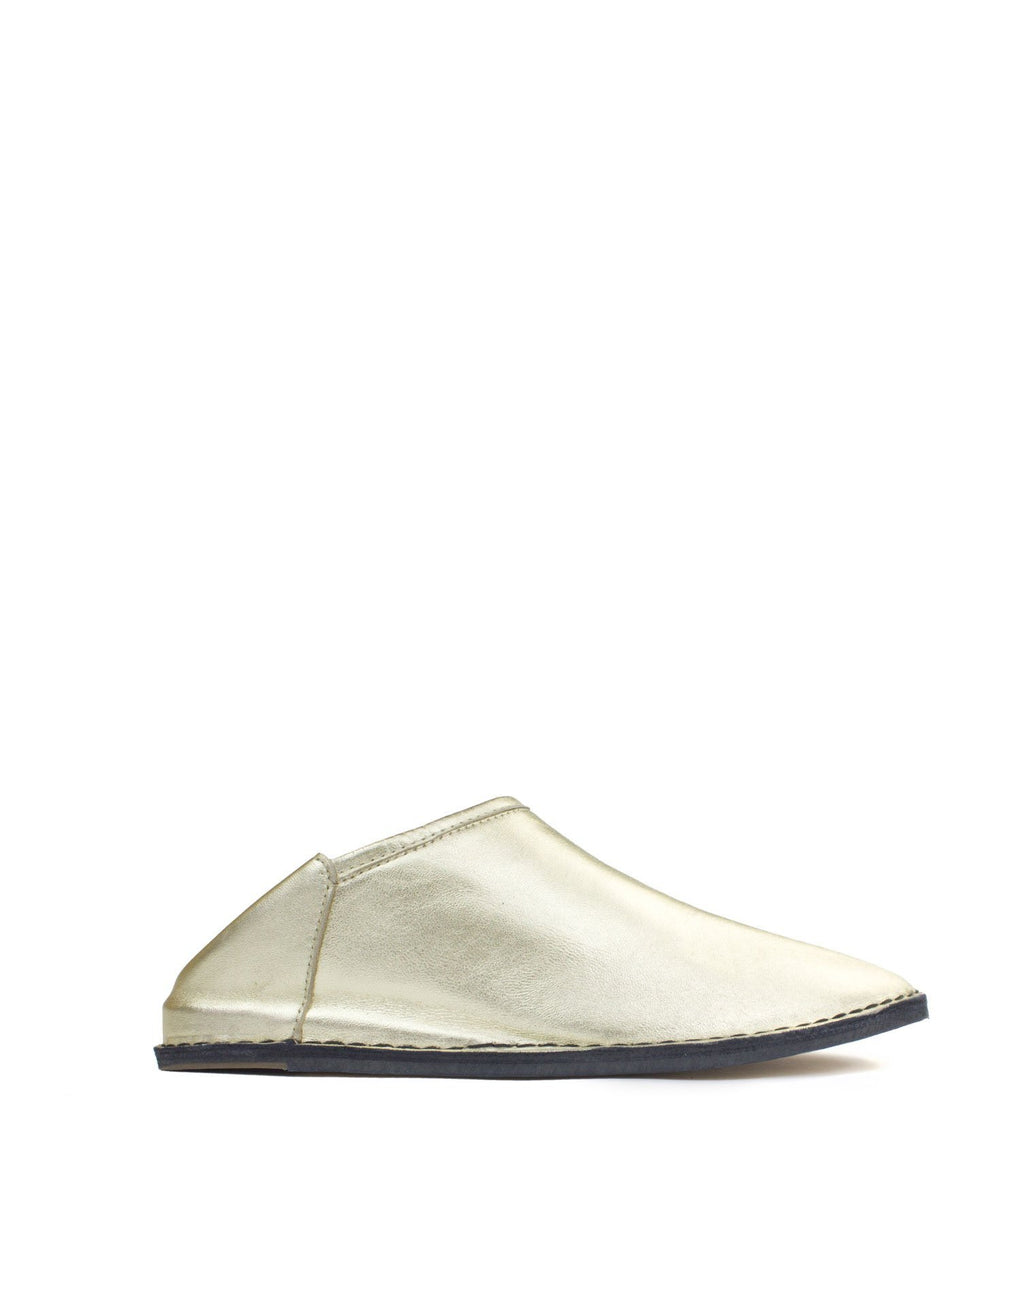 Soft gold nappa leather slip on slipper shoe by designer Georgina Goodman, designed to be worn inside and out with a clever hidden 2cm wedge for comfort